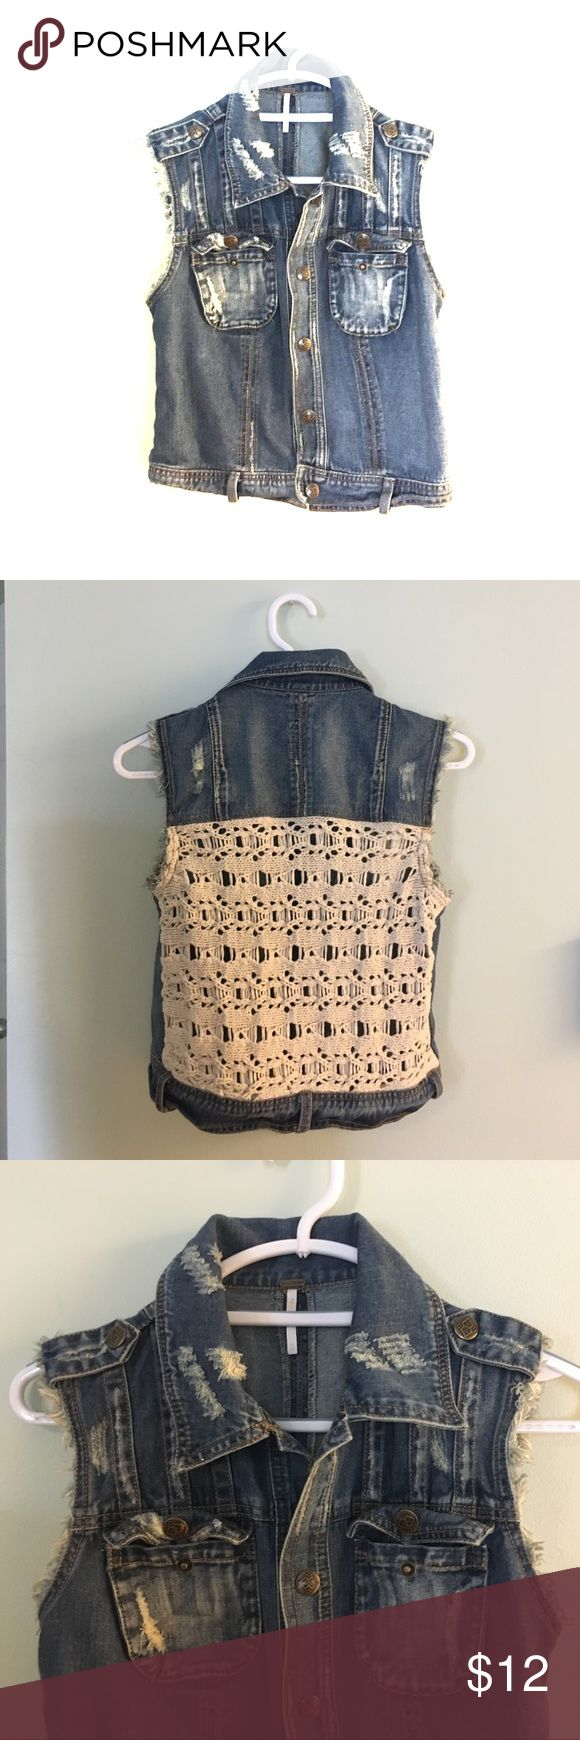 Free people Sleeveless Jean jacket Free People Jean jacket with crocheted back Free People Jackets & Coats Jean Jackets